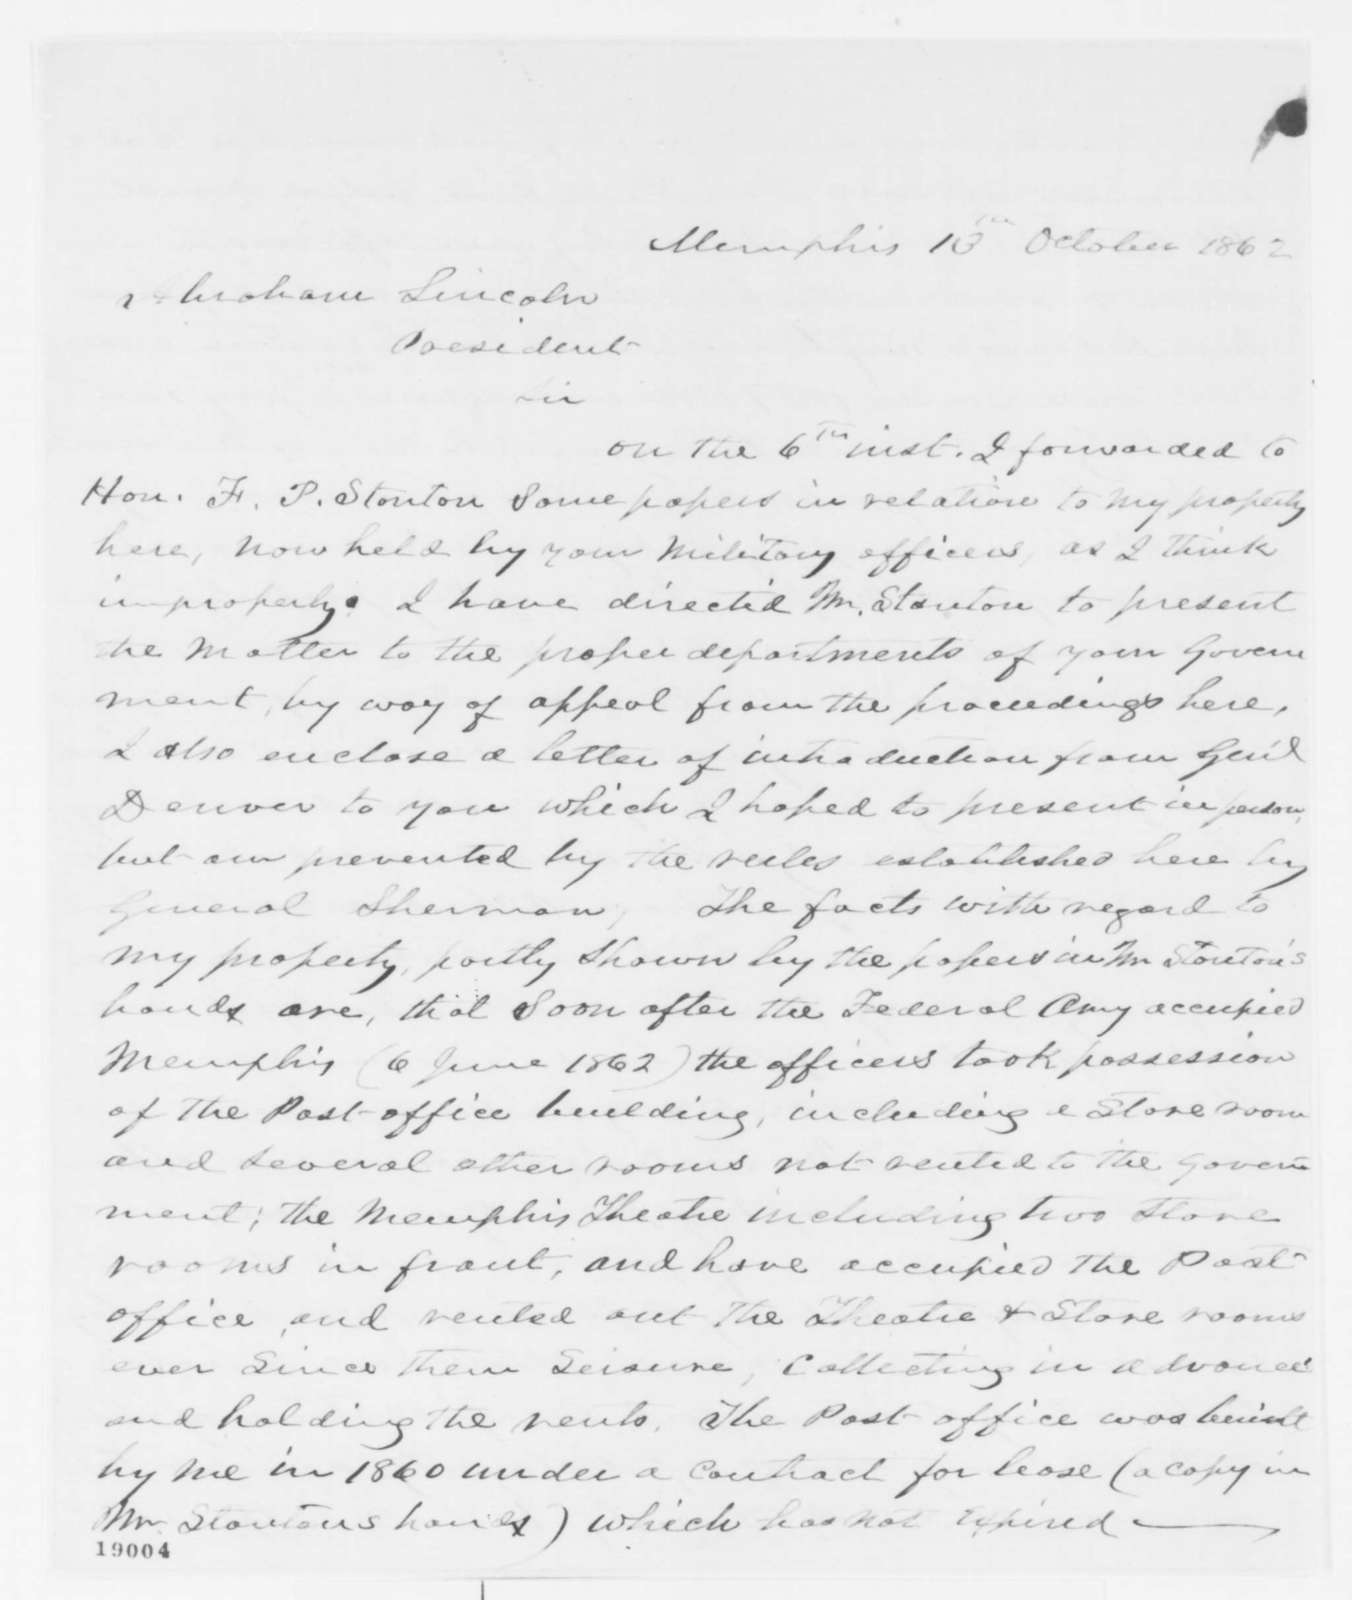 James Wickersham to Abraham Lincoln, Monday, October 13, 1862  (Government seizure of his property)